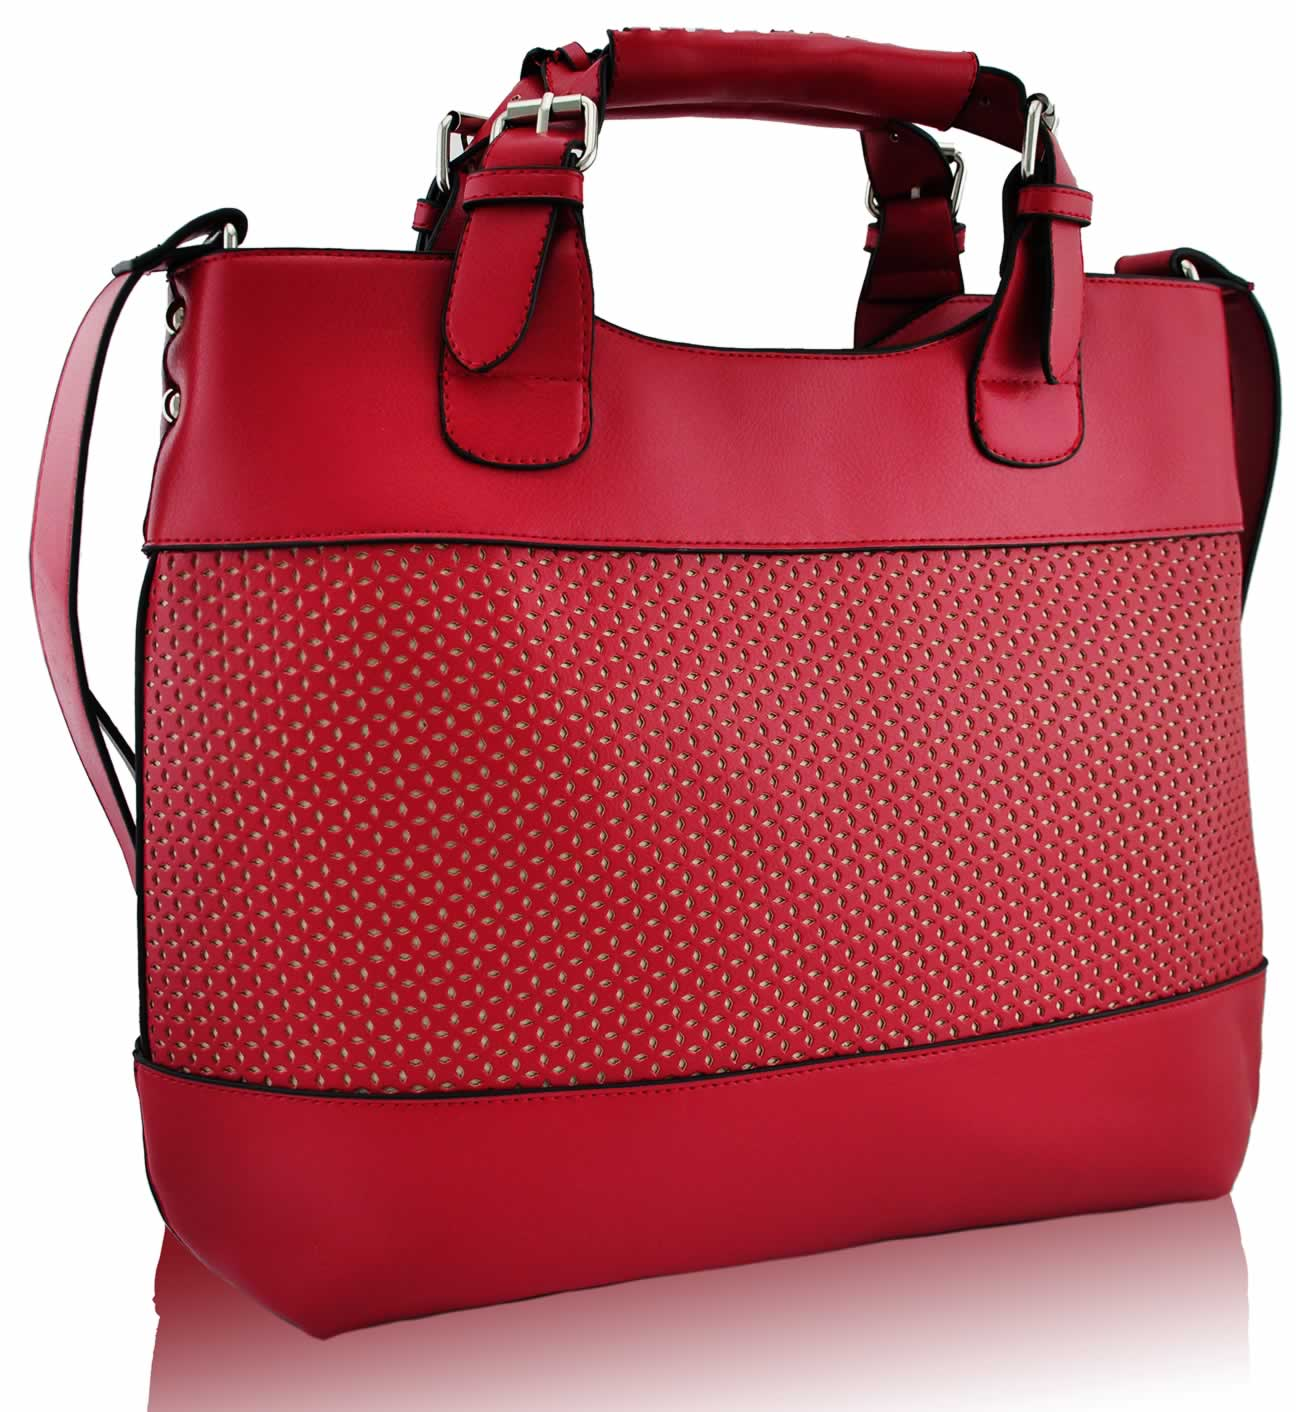 Wholesale Red Ladies Fashion Tote Handbag In Brown